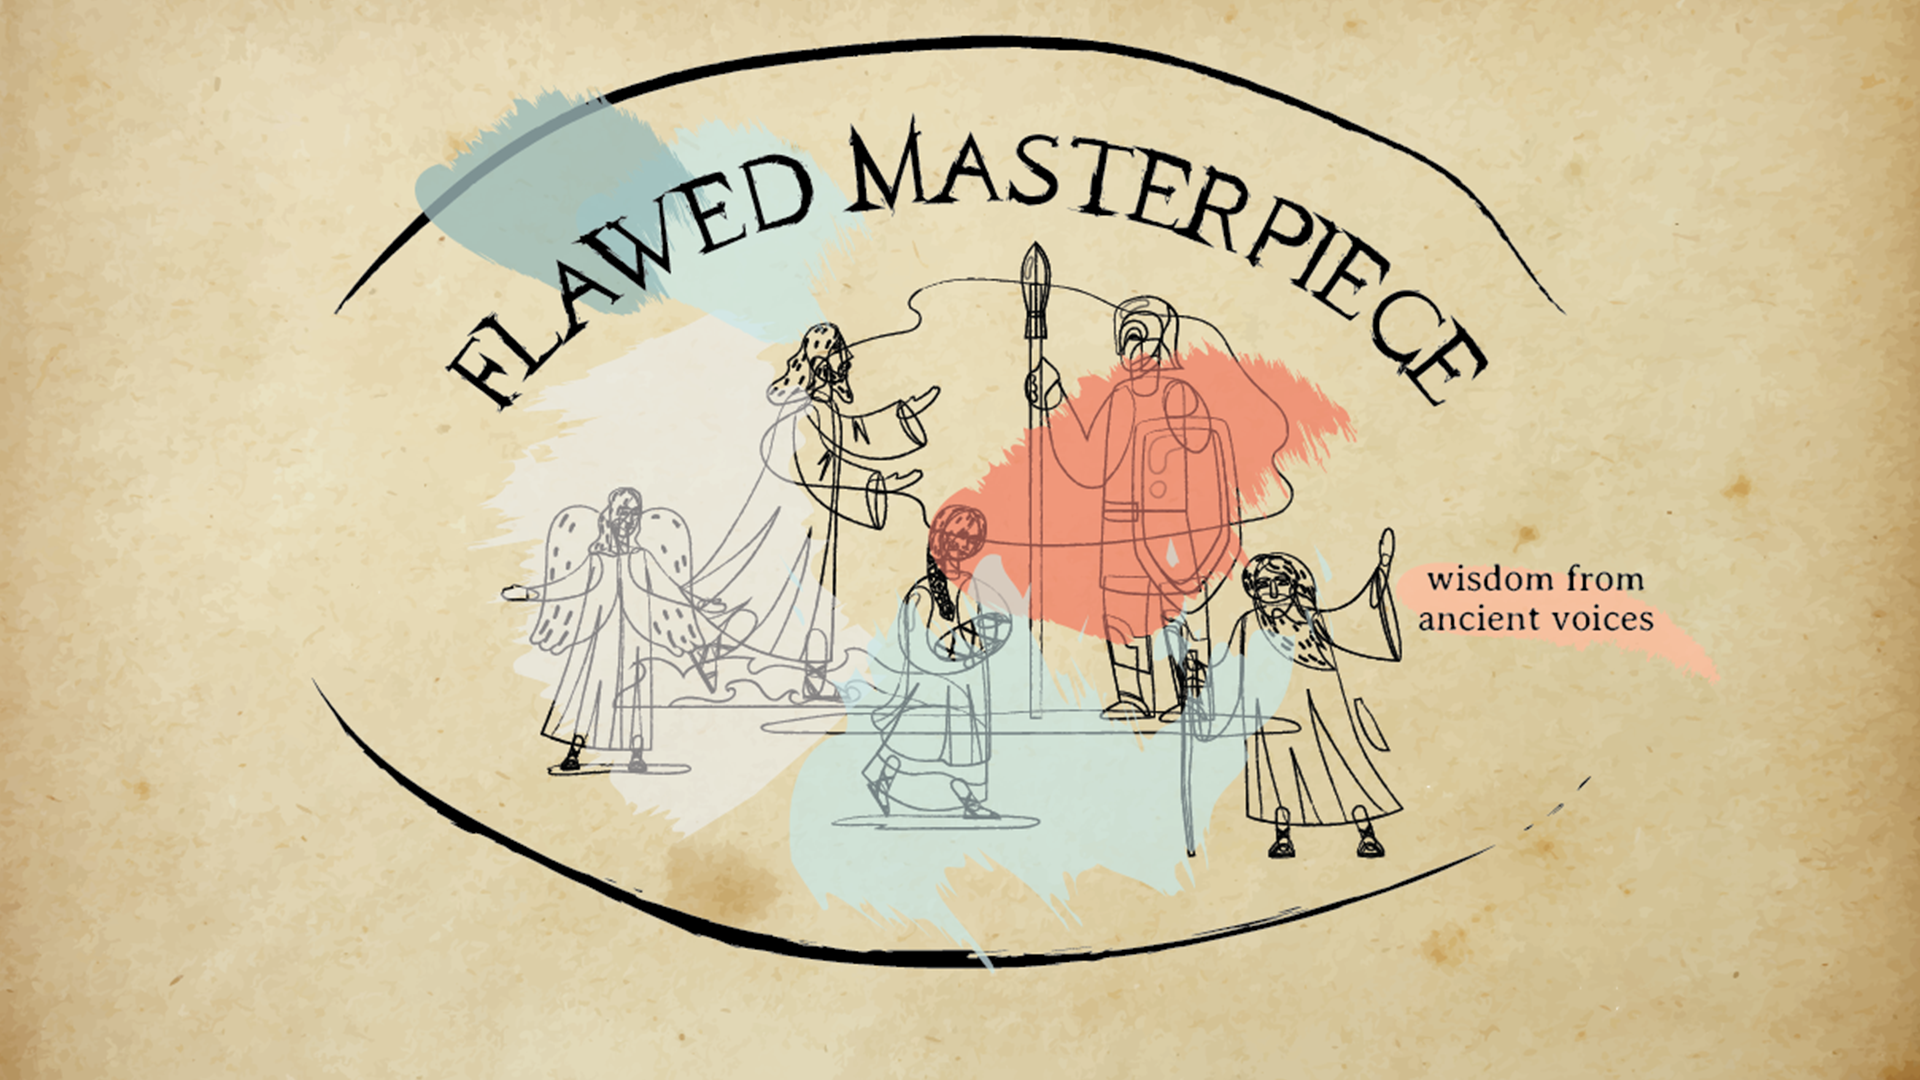 flawed-masterpiece-1920.png